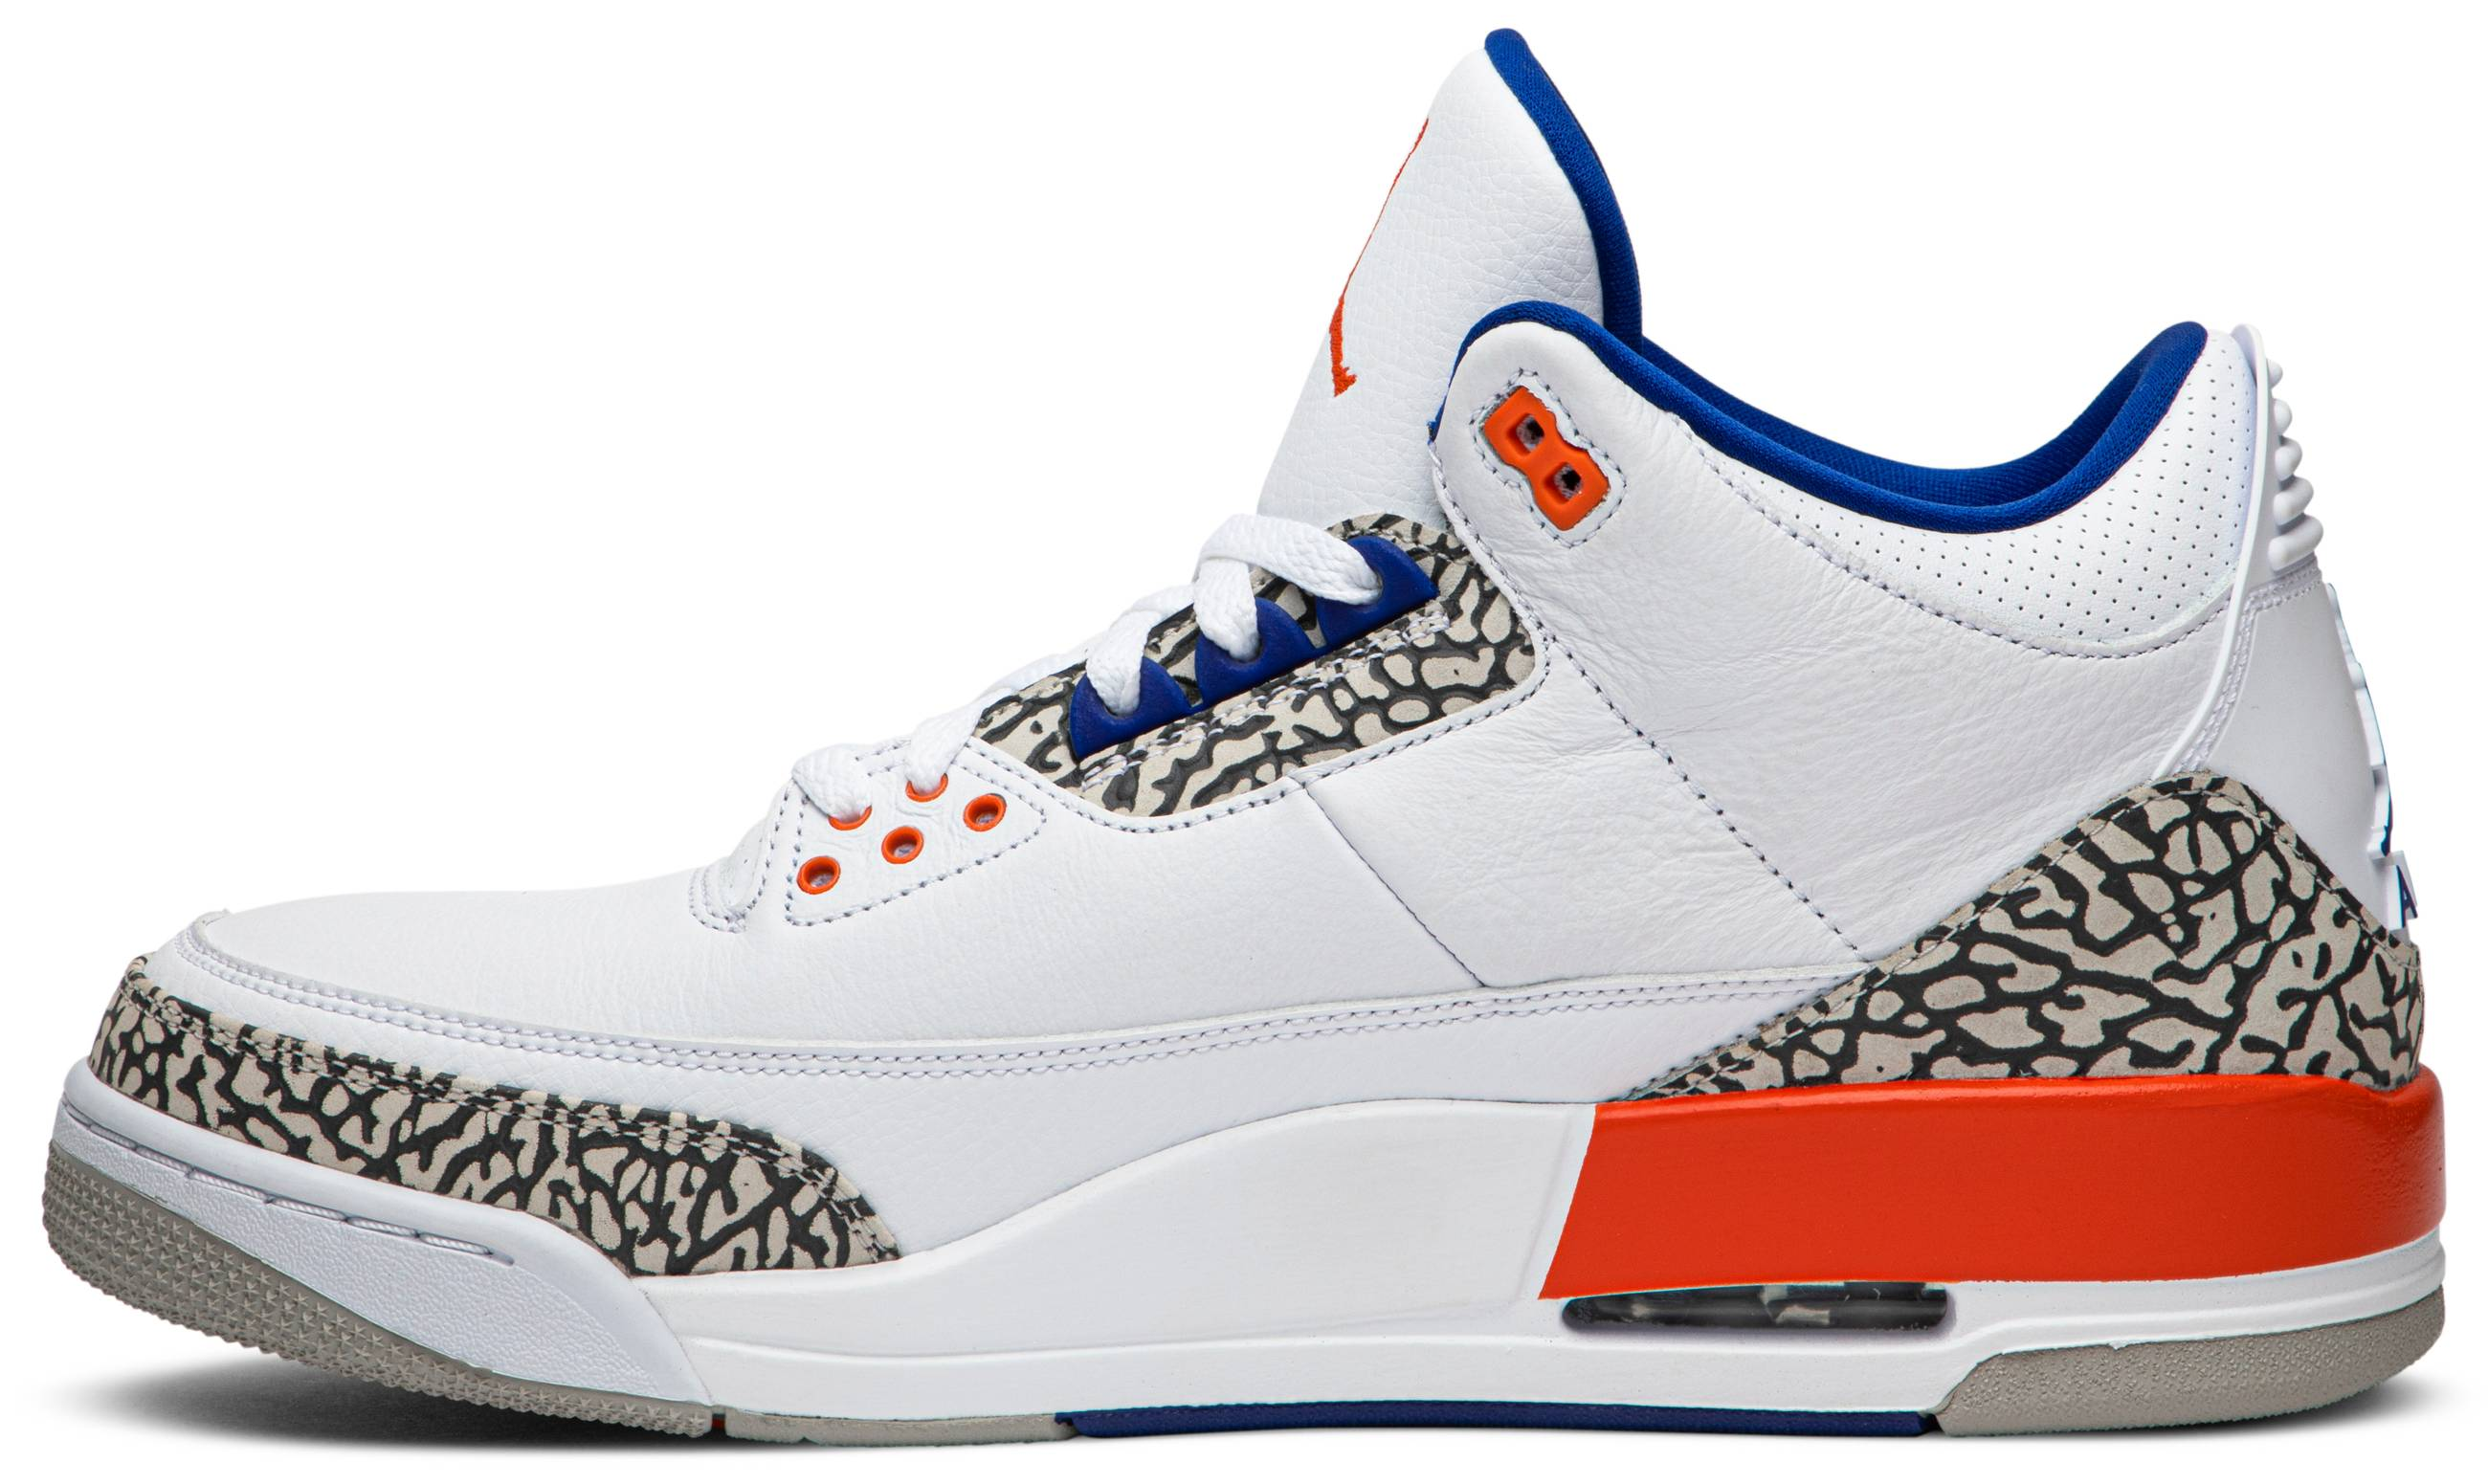 Air Jordan 3 'Knicks' 136064-14 (Medial)